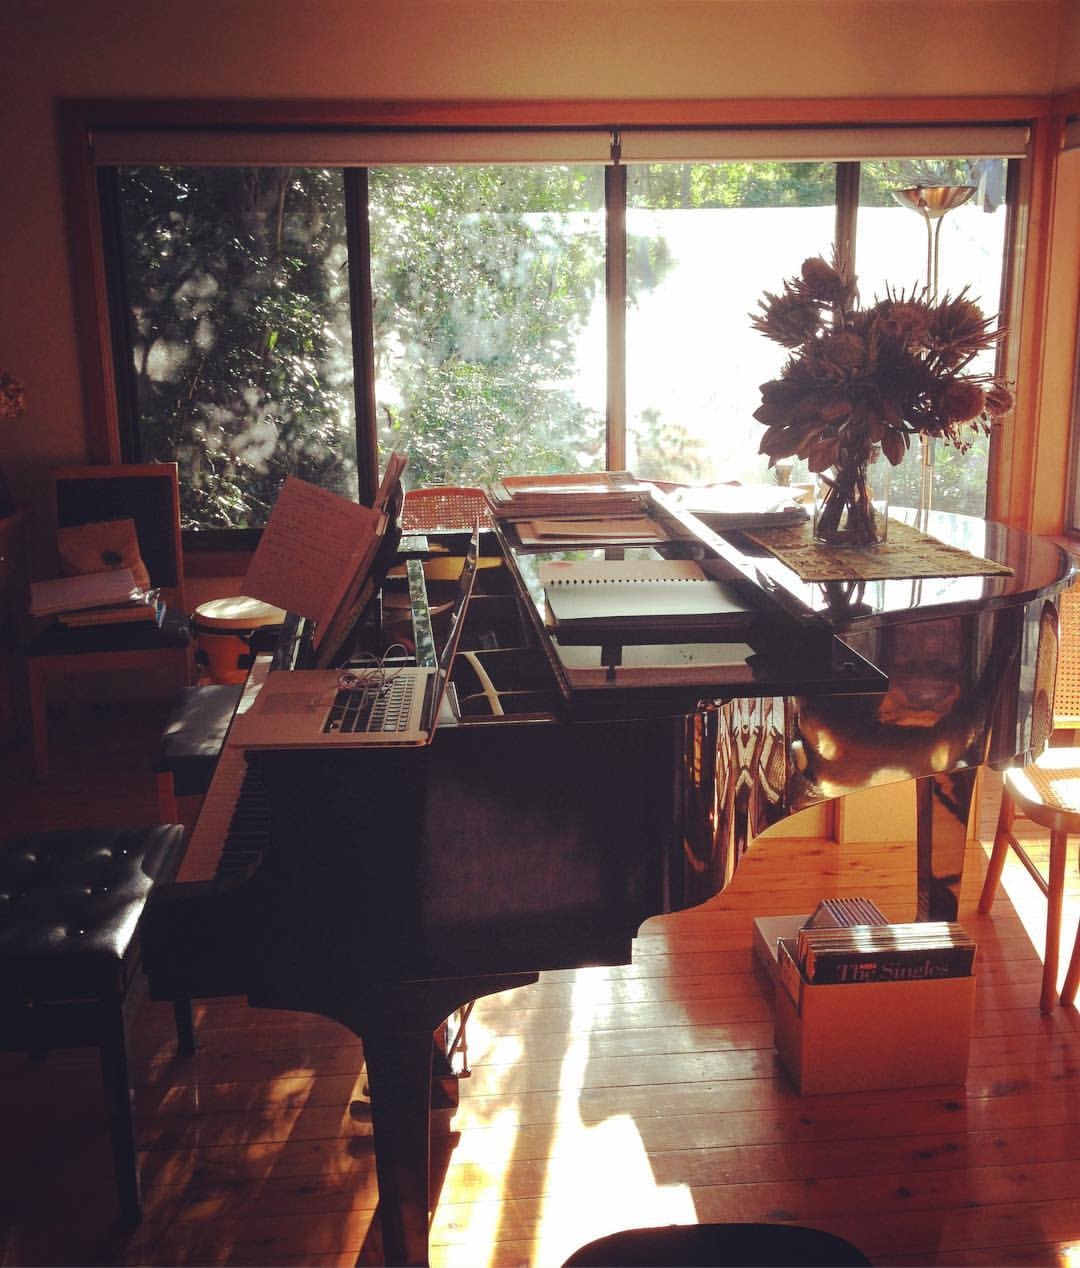 My family home, my composition oasis